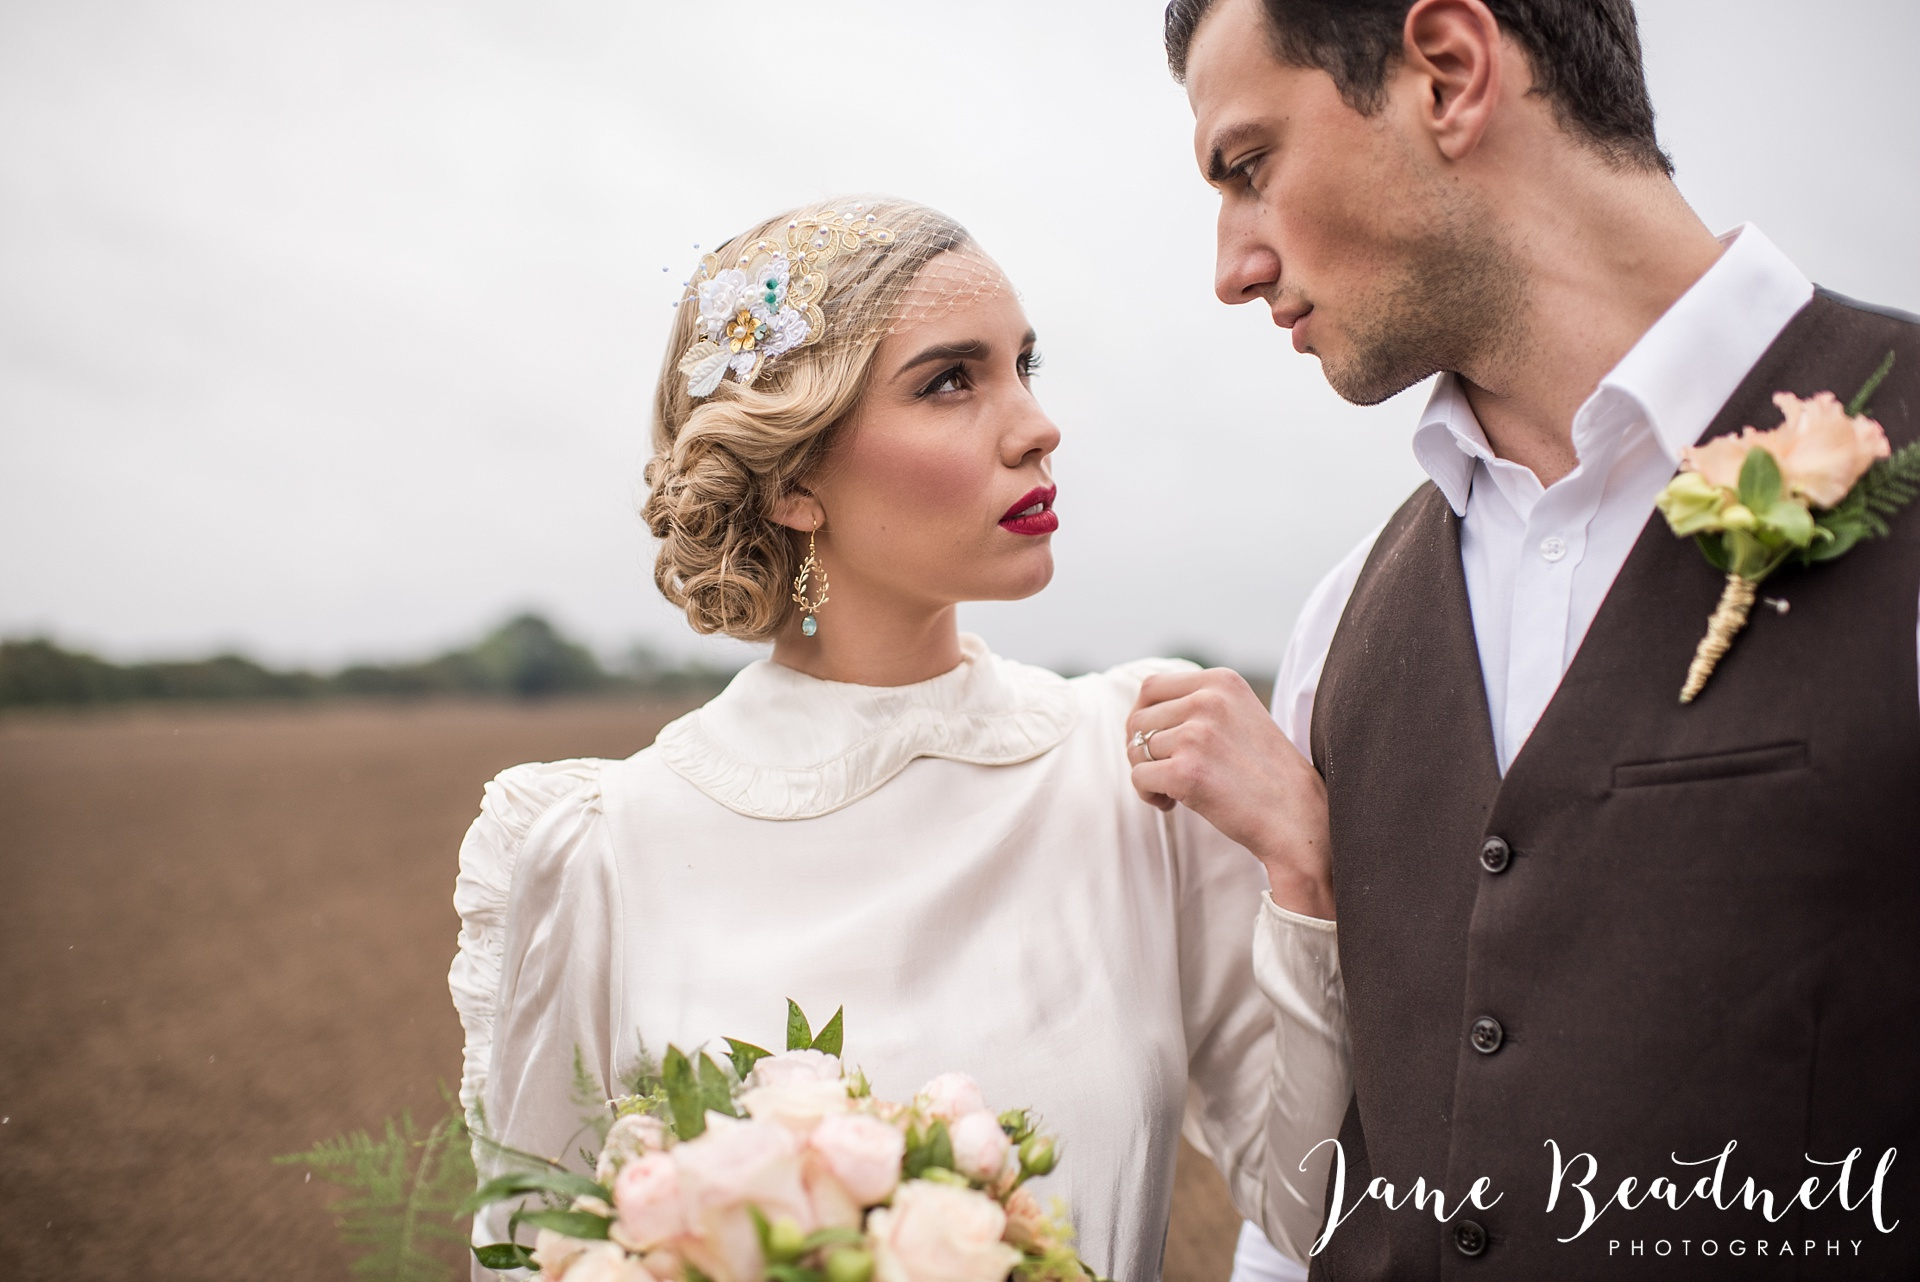 fine-art-wedding-photographer-jane-beadnell-photography-yorkshire-wedding-photographer_0051